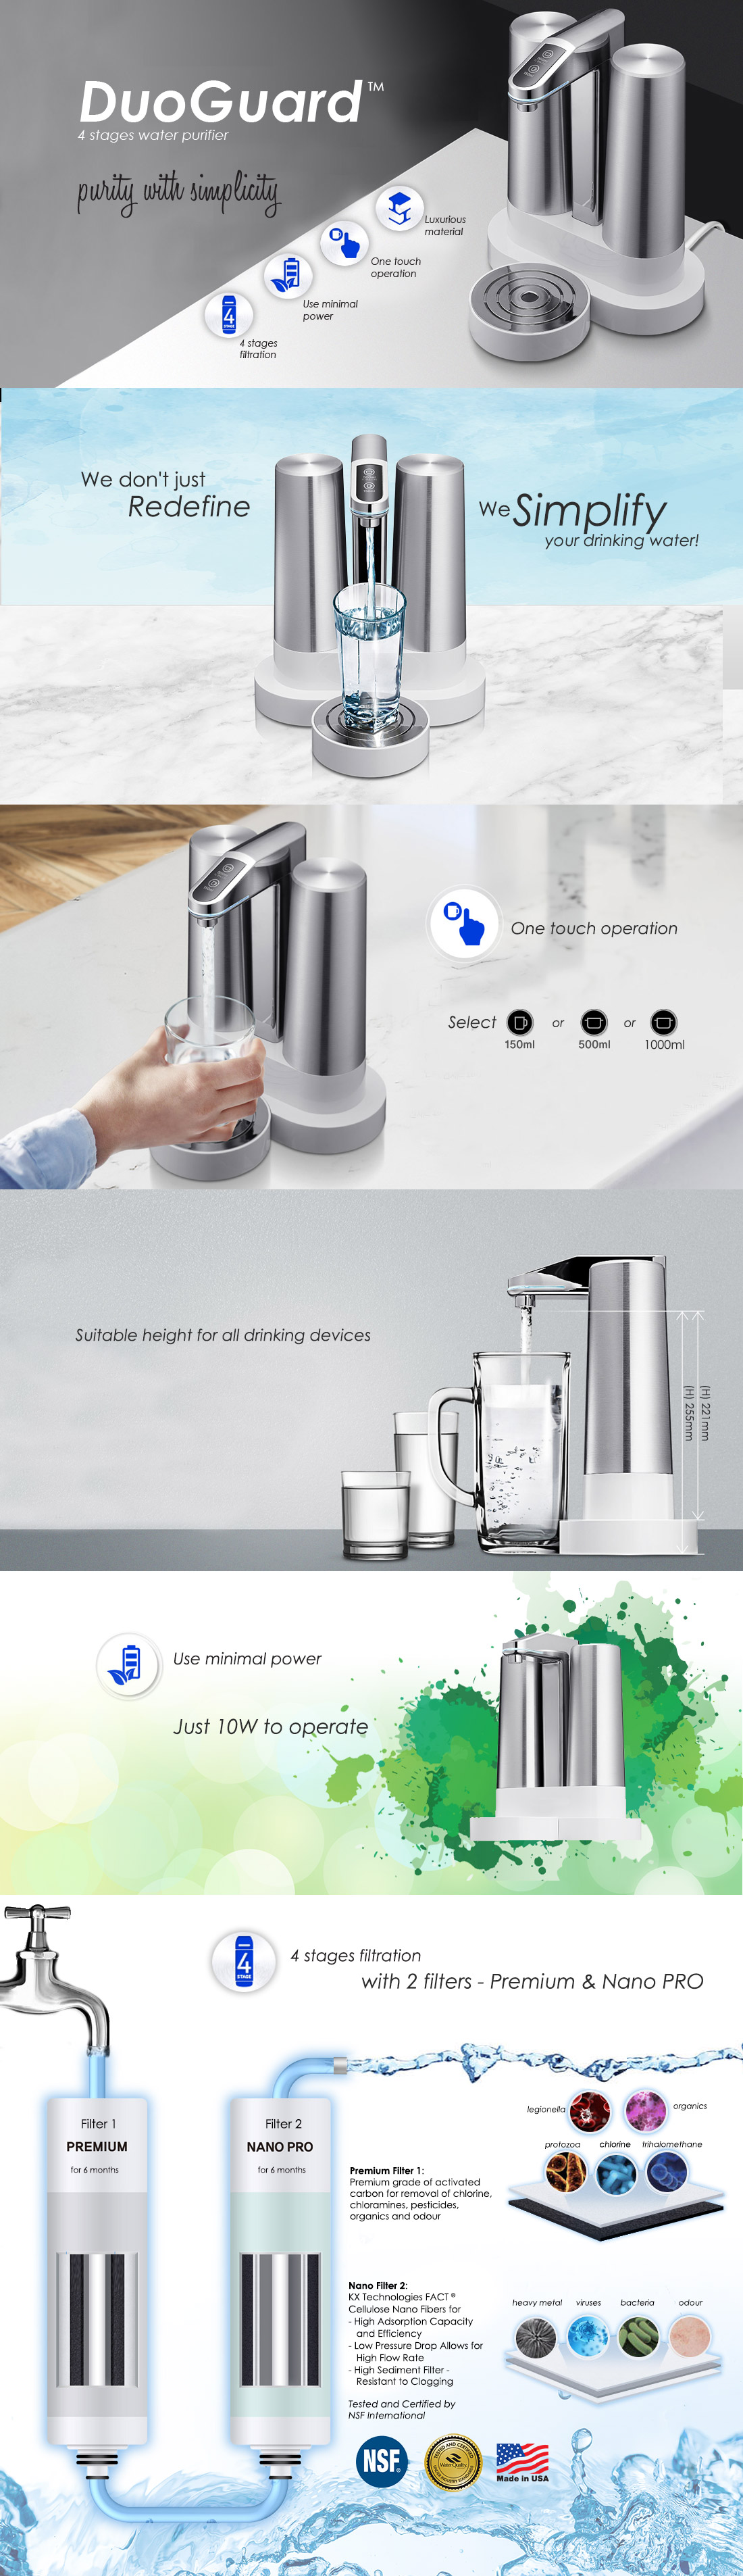 DuoGuard water filter and purifier